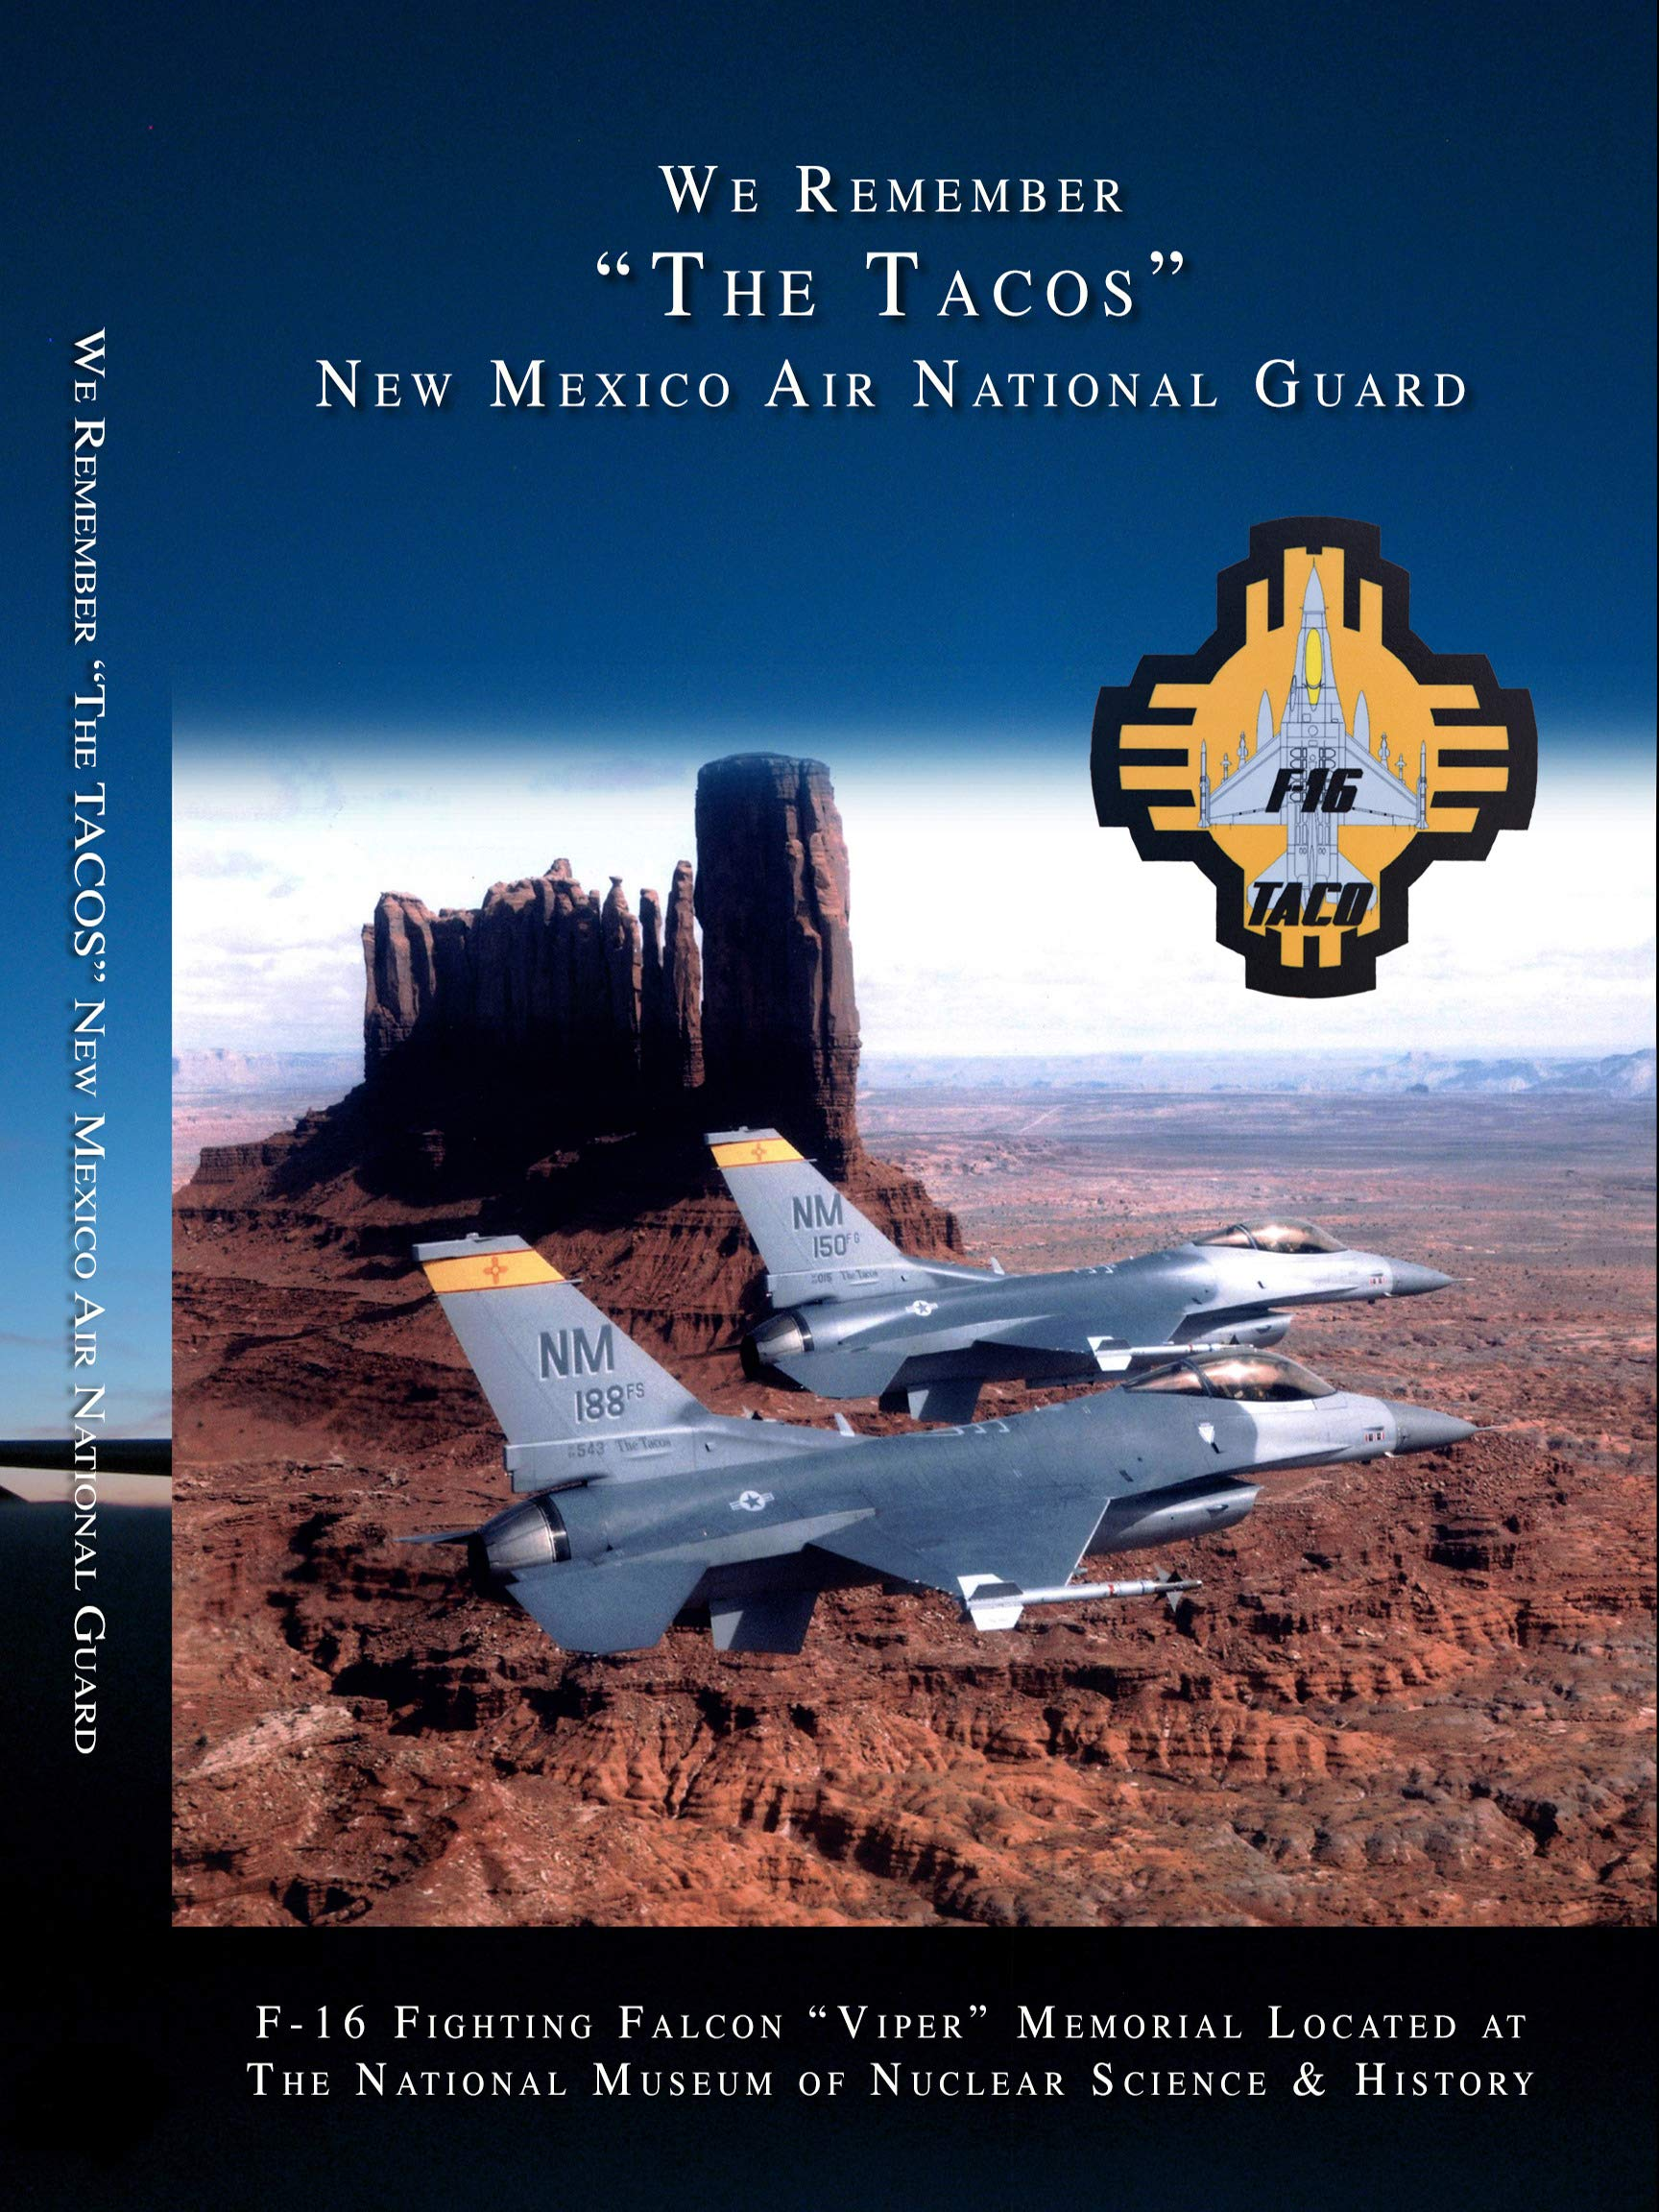 New Mexico Air National Guard - TACOS - We Remember